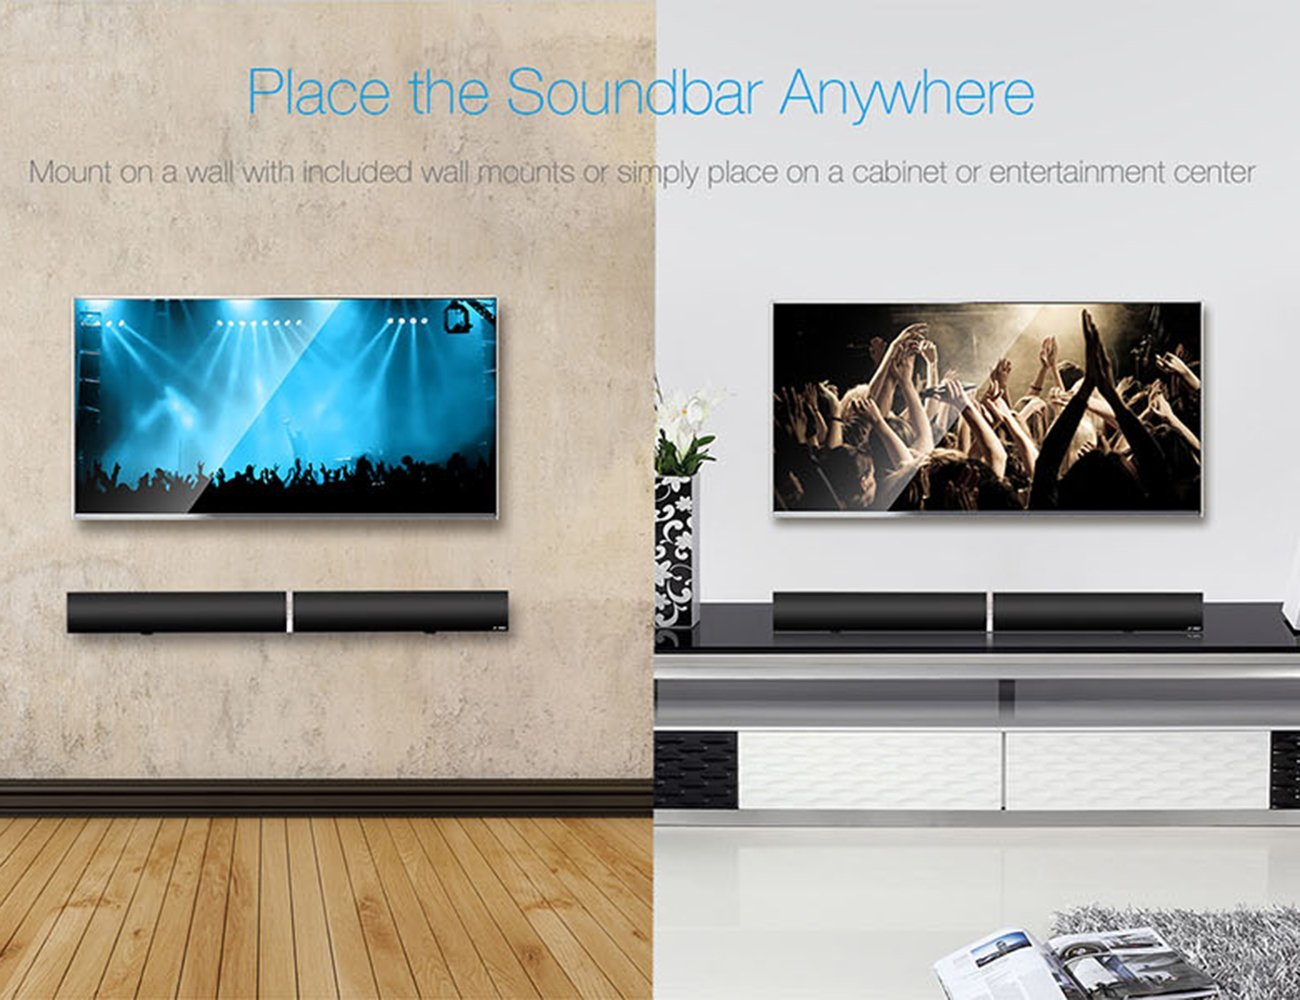 LuguLake Soundbar